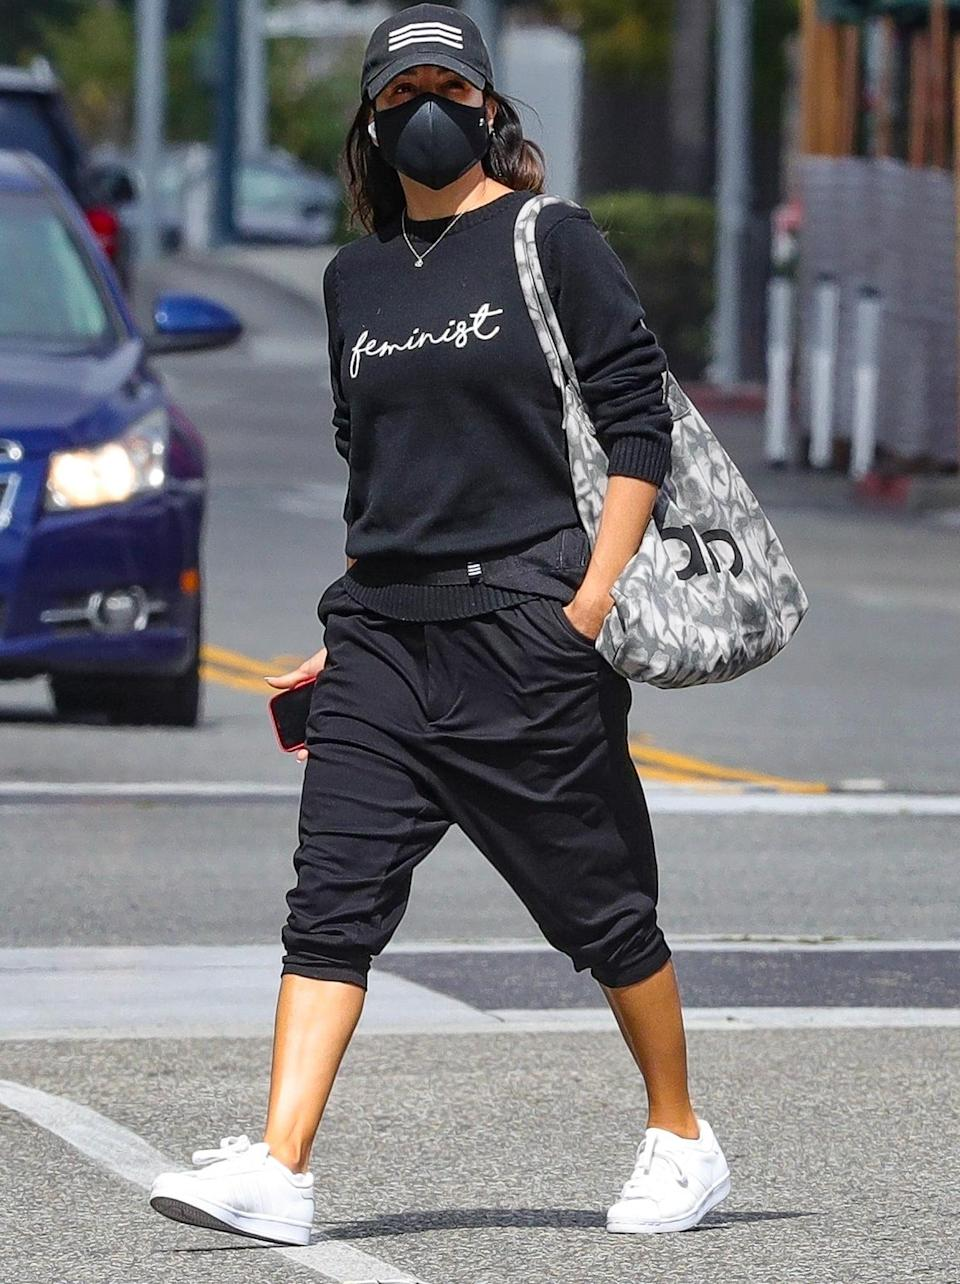 "<p>Eva Longoria wears a ""feminist"" sweater in celebration of International Women's Day while out shopping on Monday in Beverly Hills.</p>"